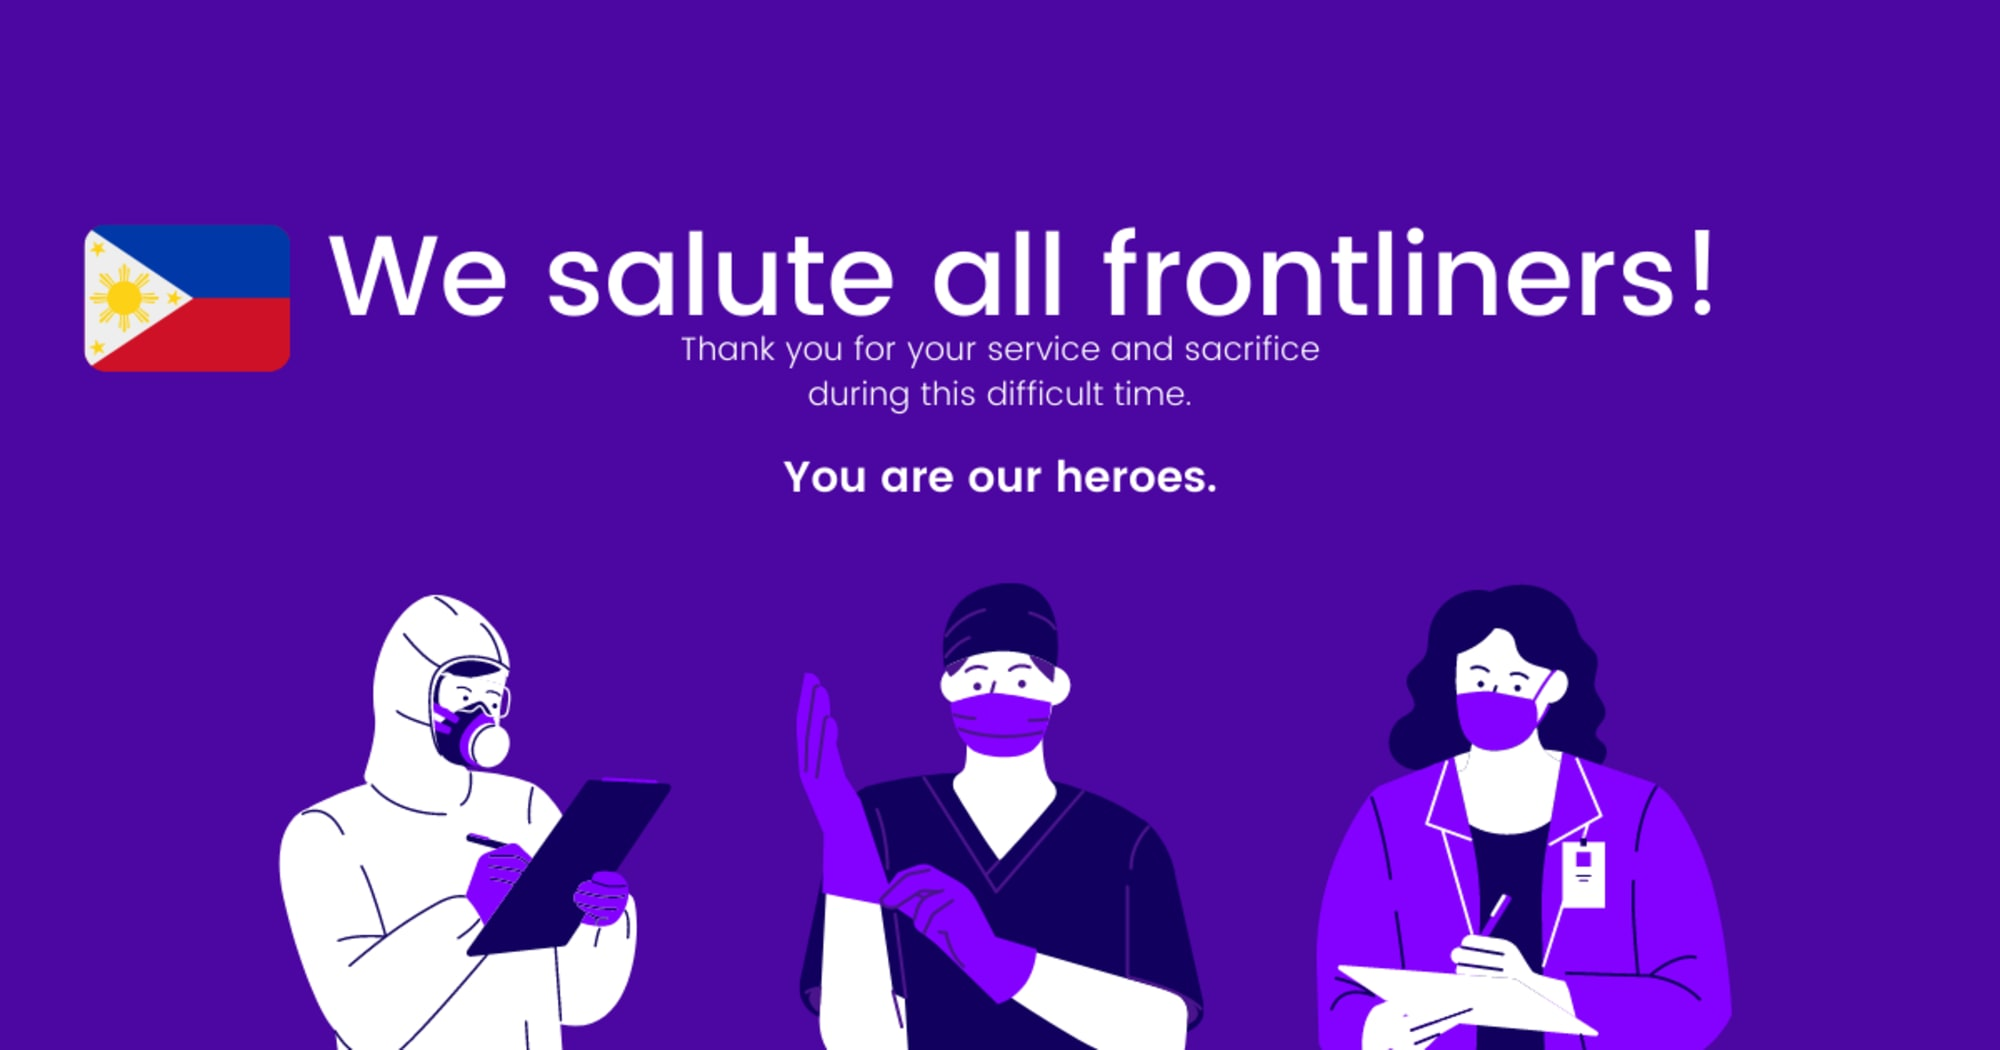 Philippine Frontline Healthcare Workers, First to be Vaccinated